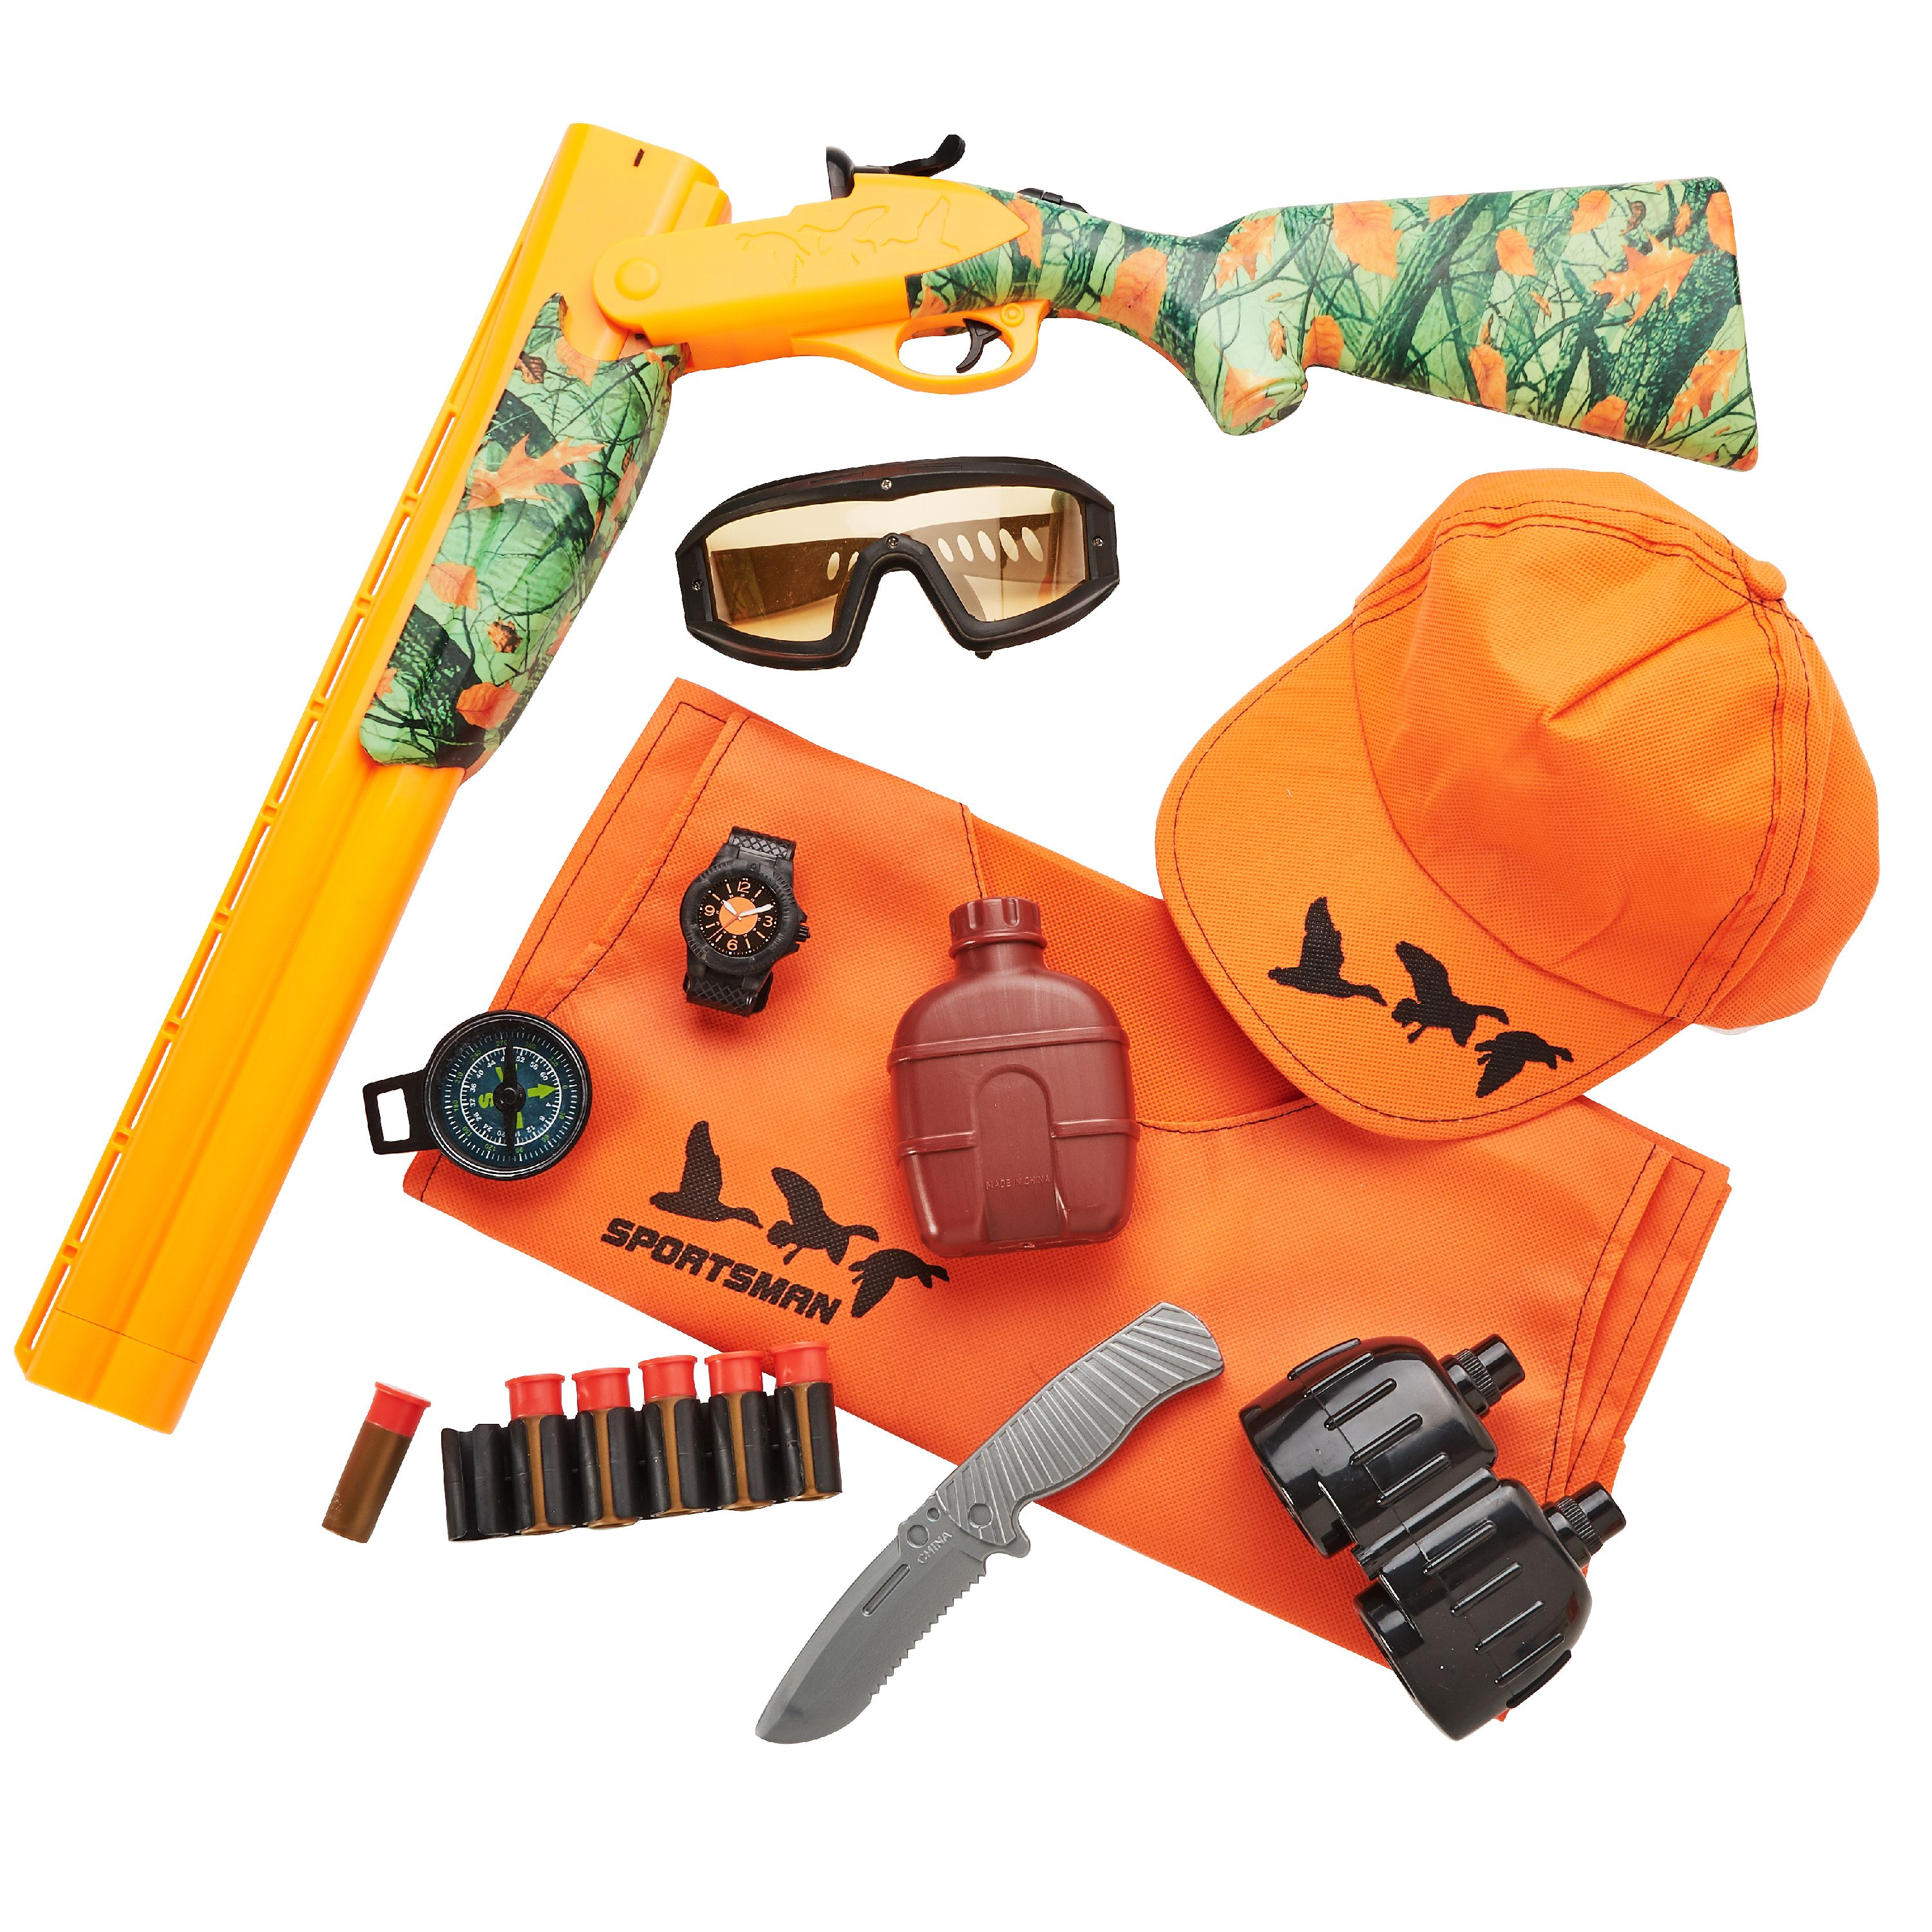 Adventure Force Sportsman Deluxe Action Roleplay Set, 16 Pieces